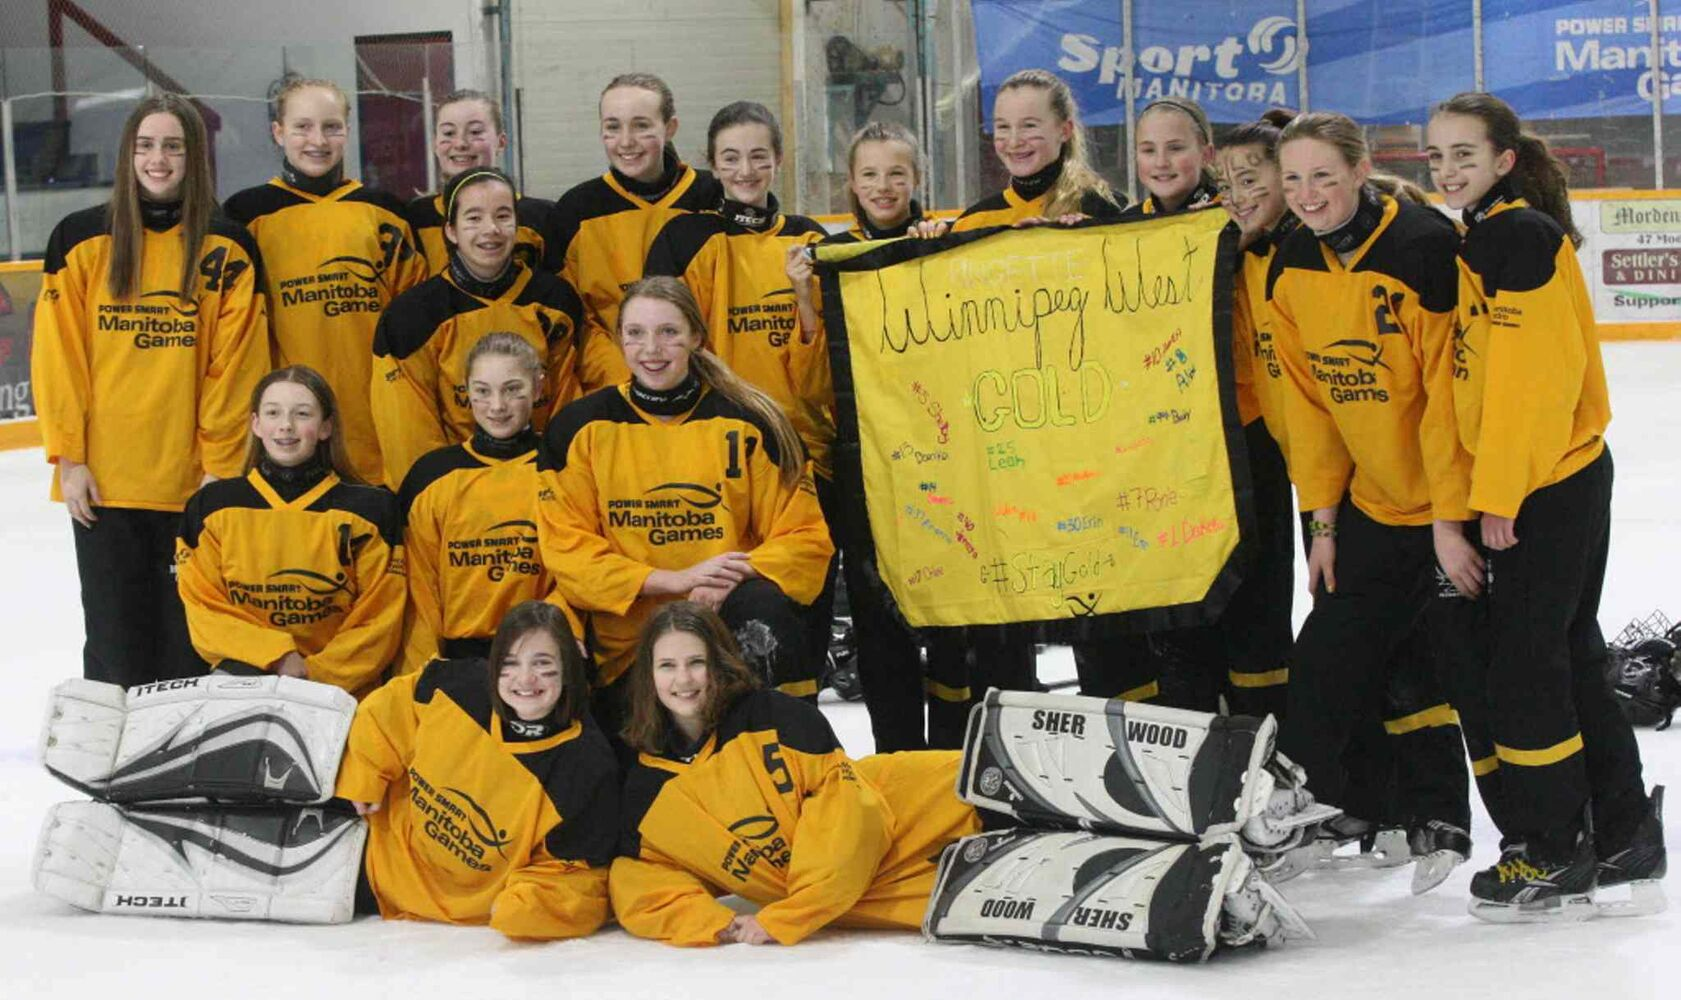 Winnipeg West Gold ringette team celebrates their gold win over team Interlake. (JOE BRYKSA / WINNIPEG FREE PRESS)